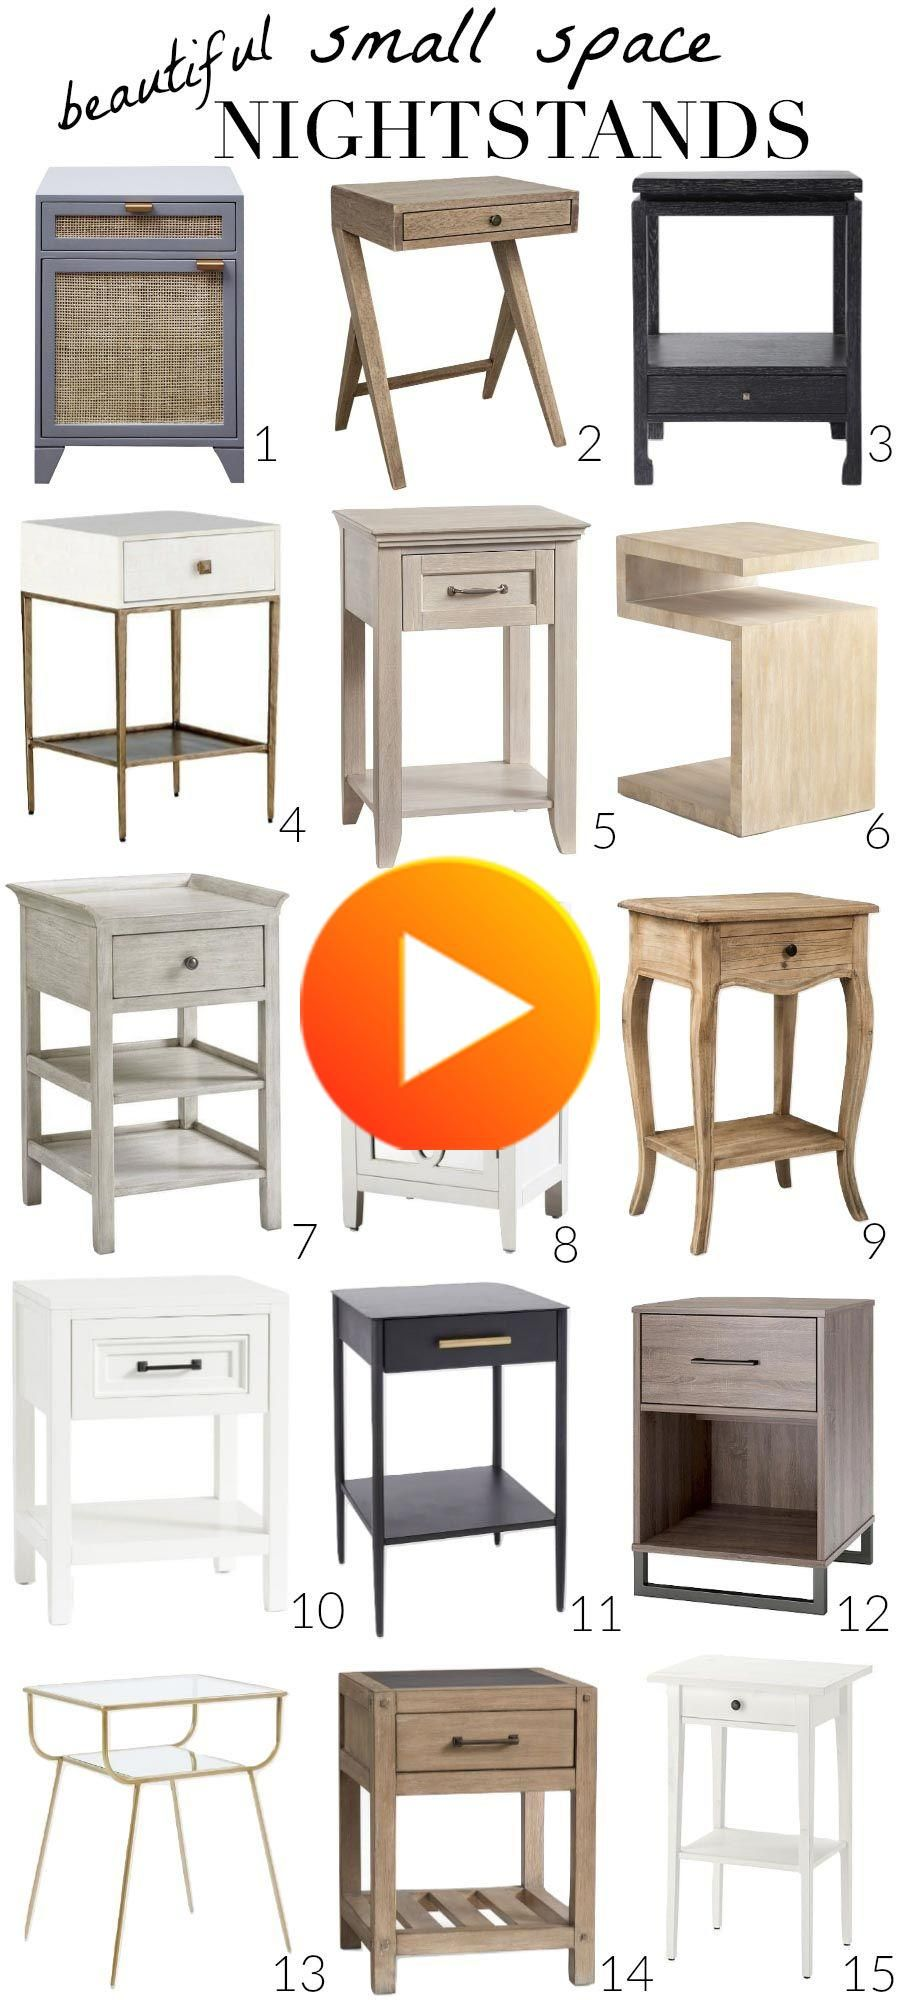 On the hunt for a narrow nightstand that's perfect for small spaces and beautiful too? I've searched them ALL and rounded up my favorite 15! #bedroomdecor #bathroomdecor